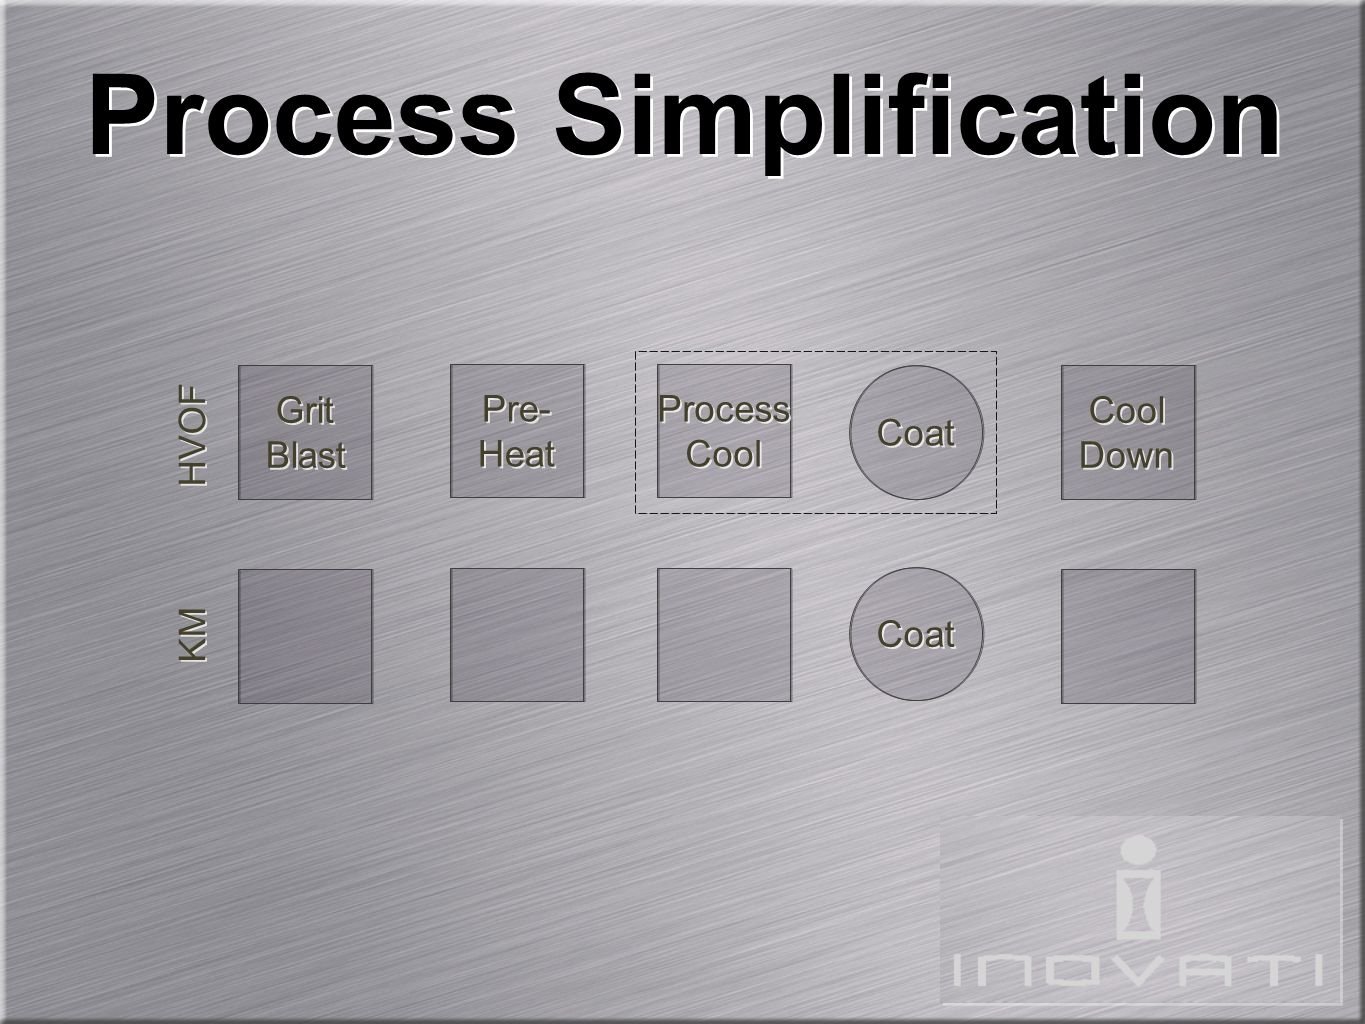 Process Simplification